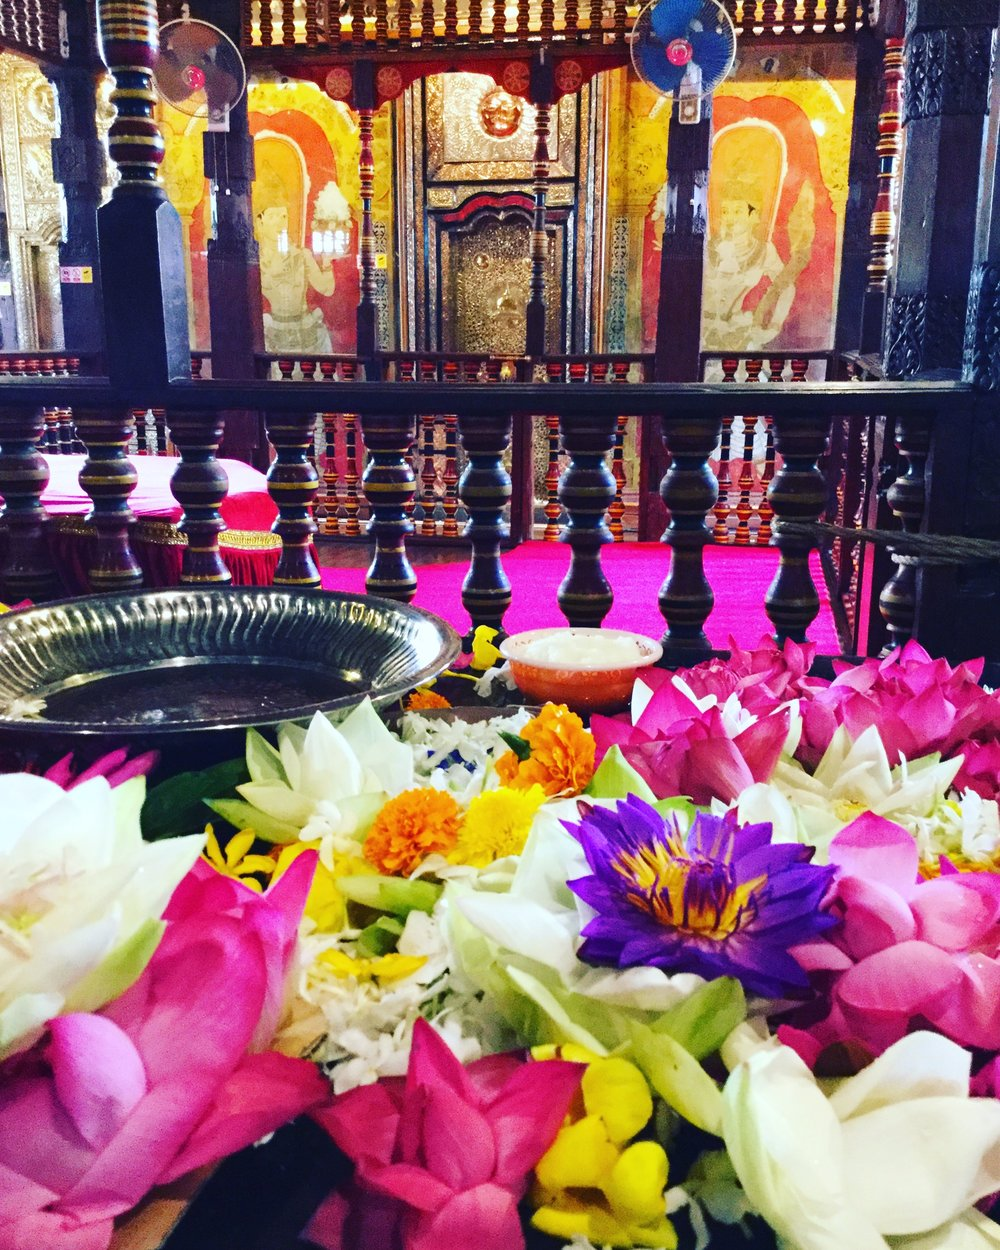 temple offerings, Kandy